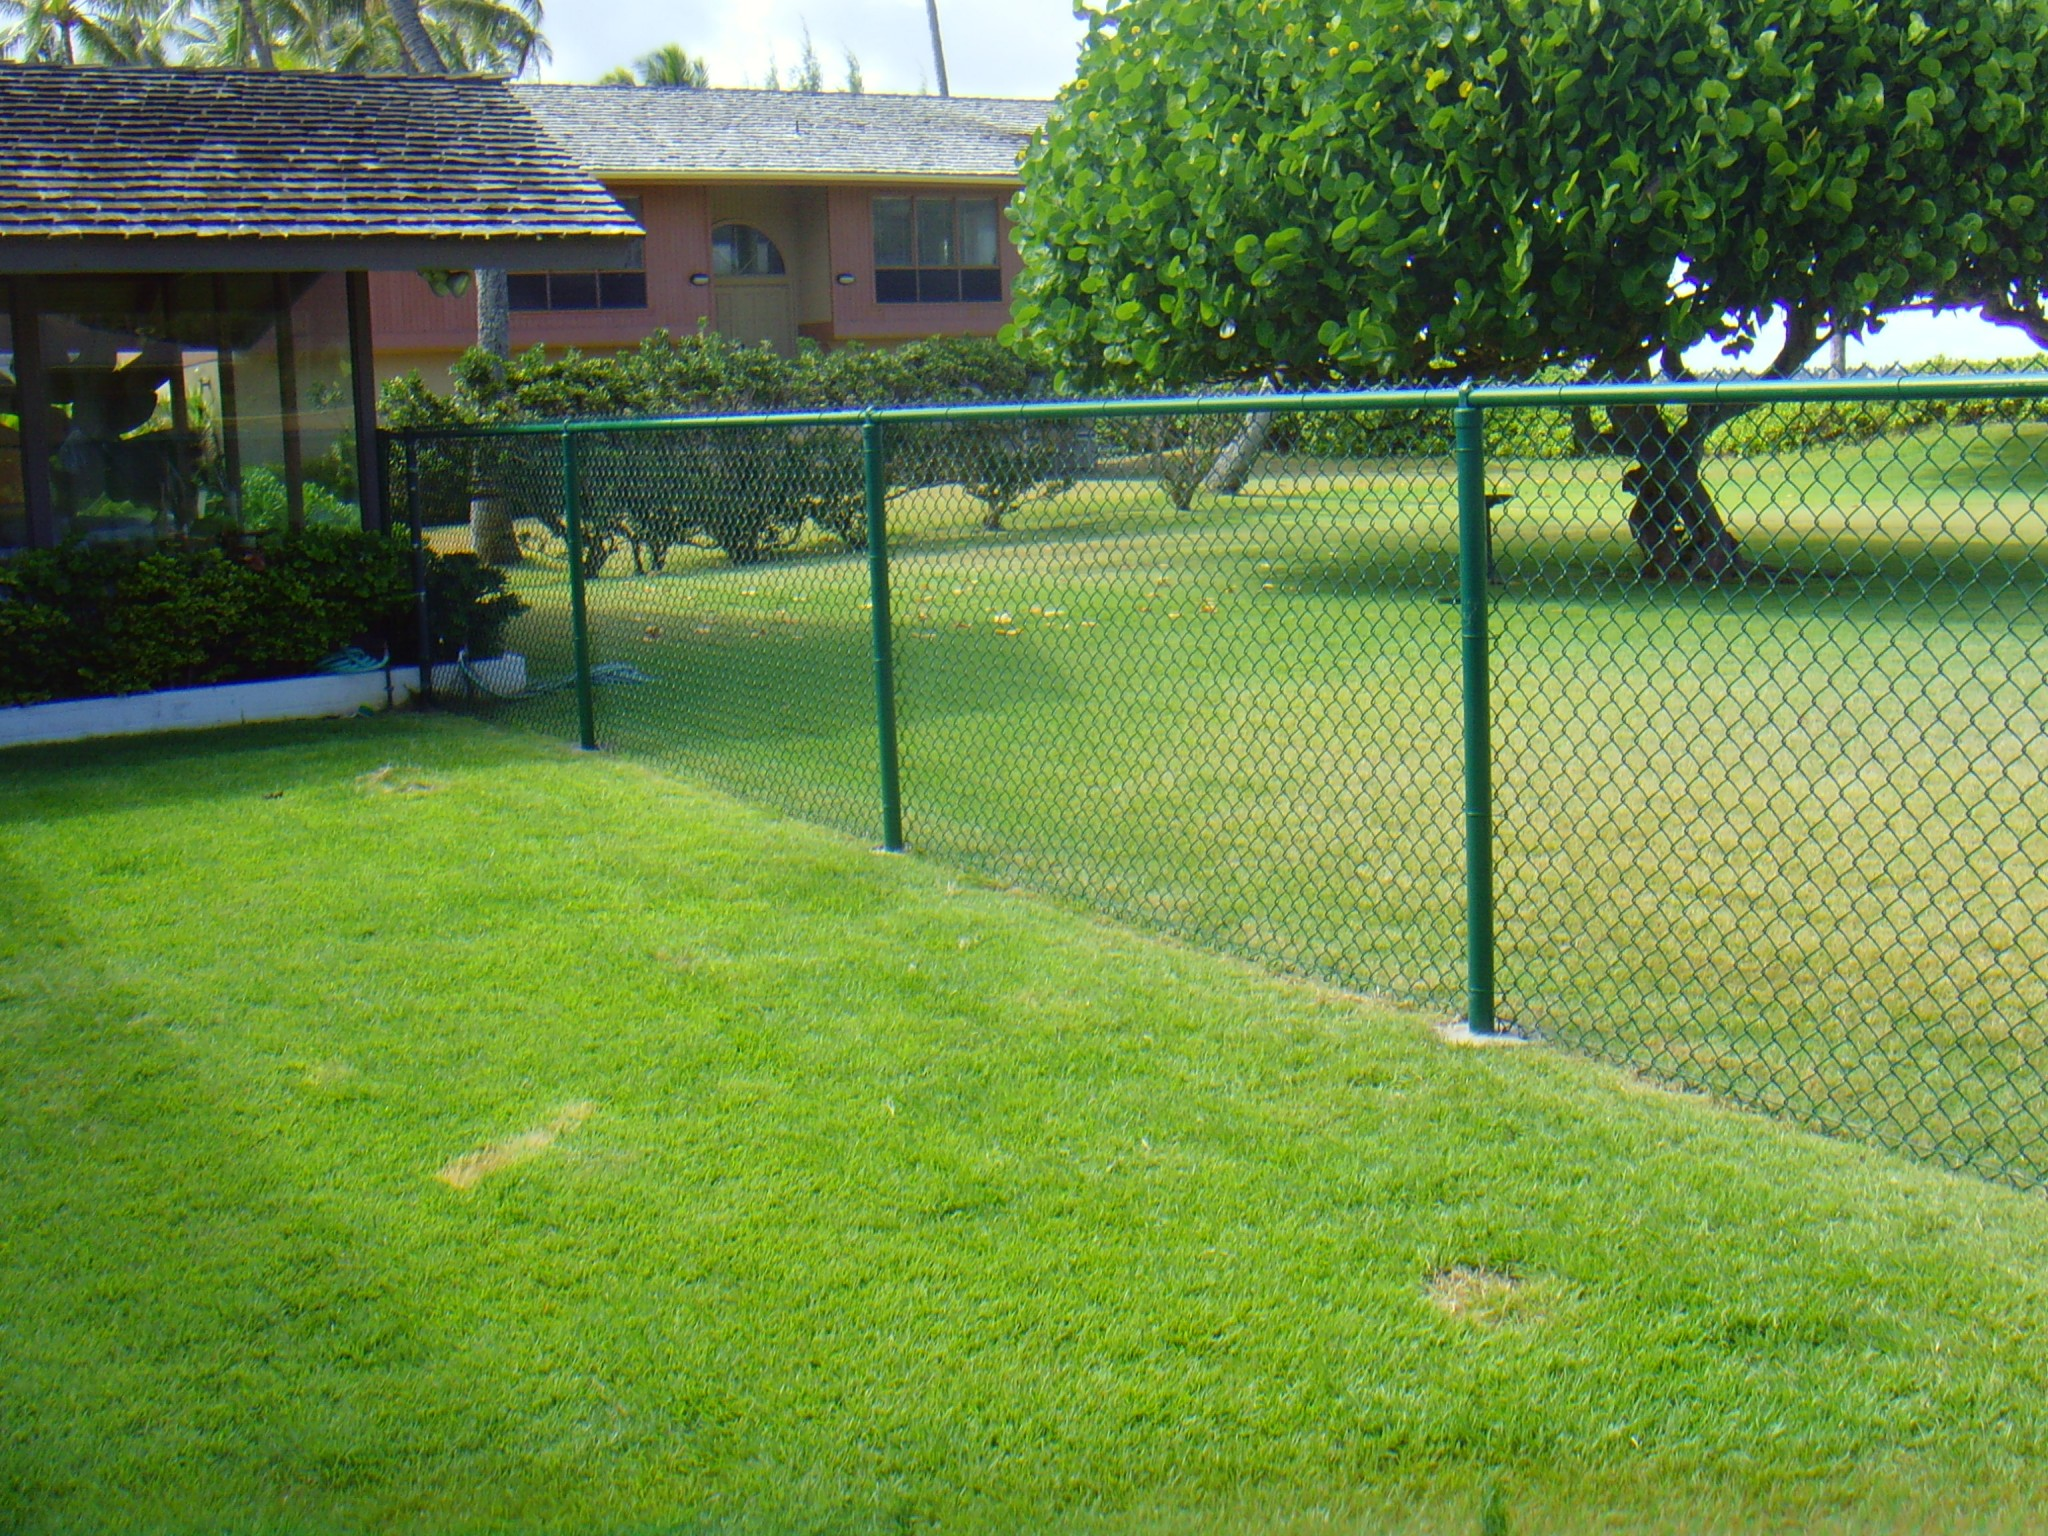 Green-Chain-Link-Fence-PVC